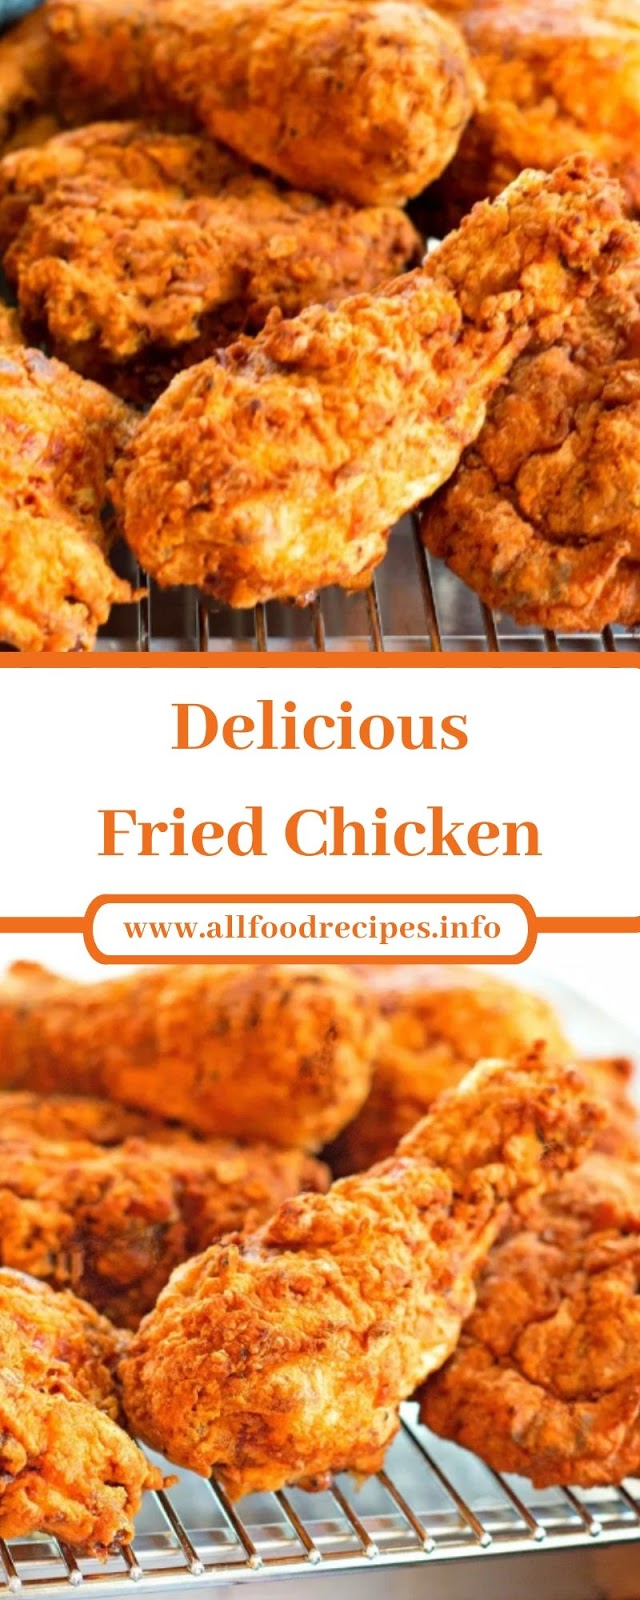 Delicious Fried Chicken